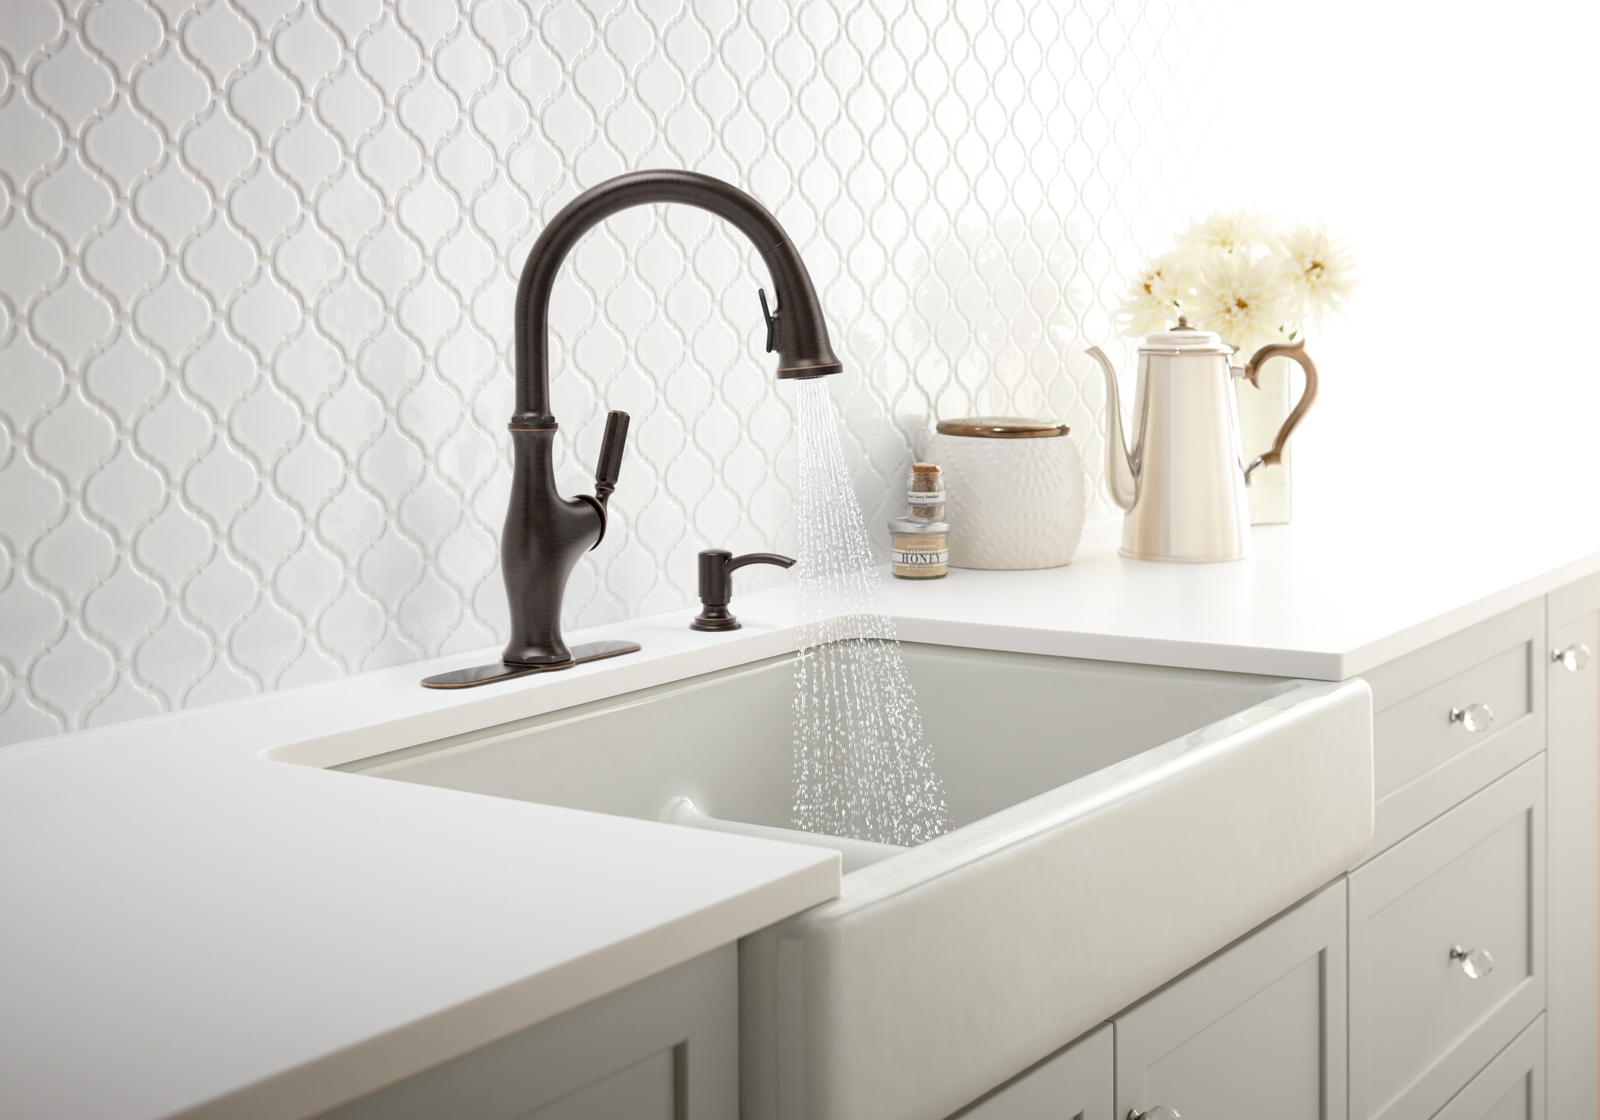 Homedepot Kitchen Faucet Finding A Farmhouse Kitchen Faucet Farmhouse Made